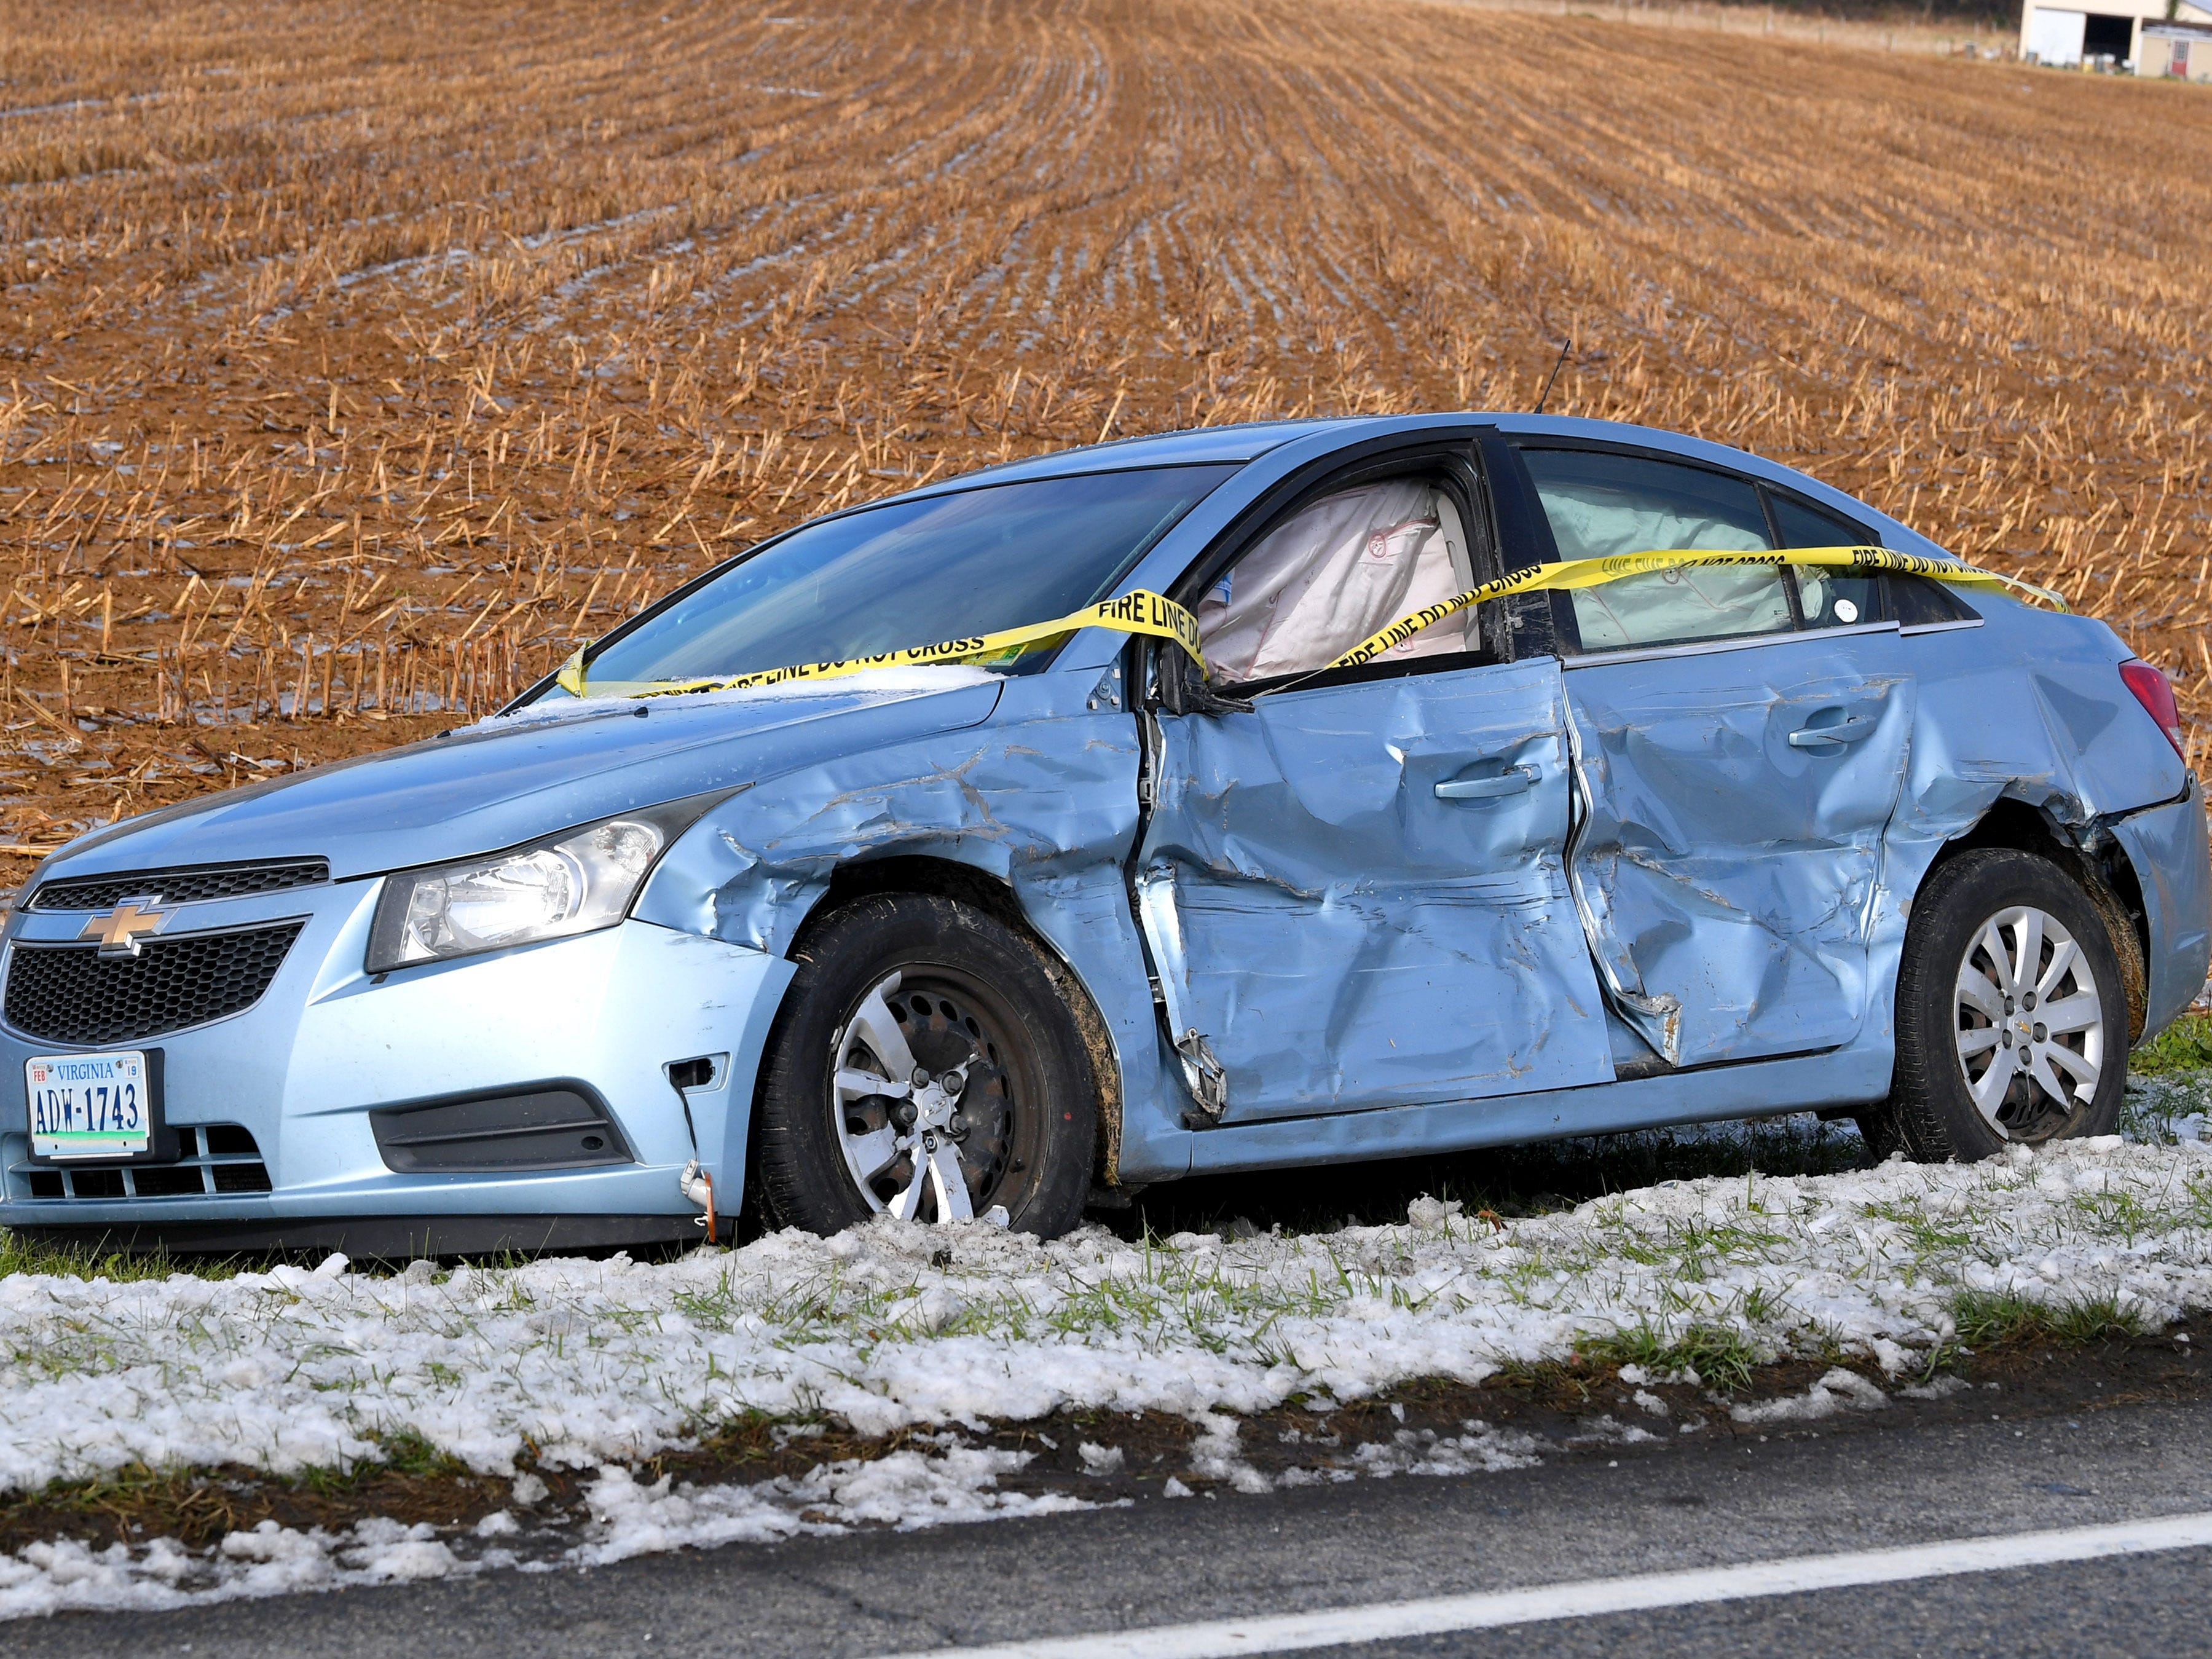 A car parked beside Tinkling Spring Road near Stuarts Draft shows damage along the driver's side following an ice storm Friday, Nov. 16, 2018.